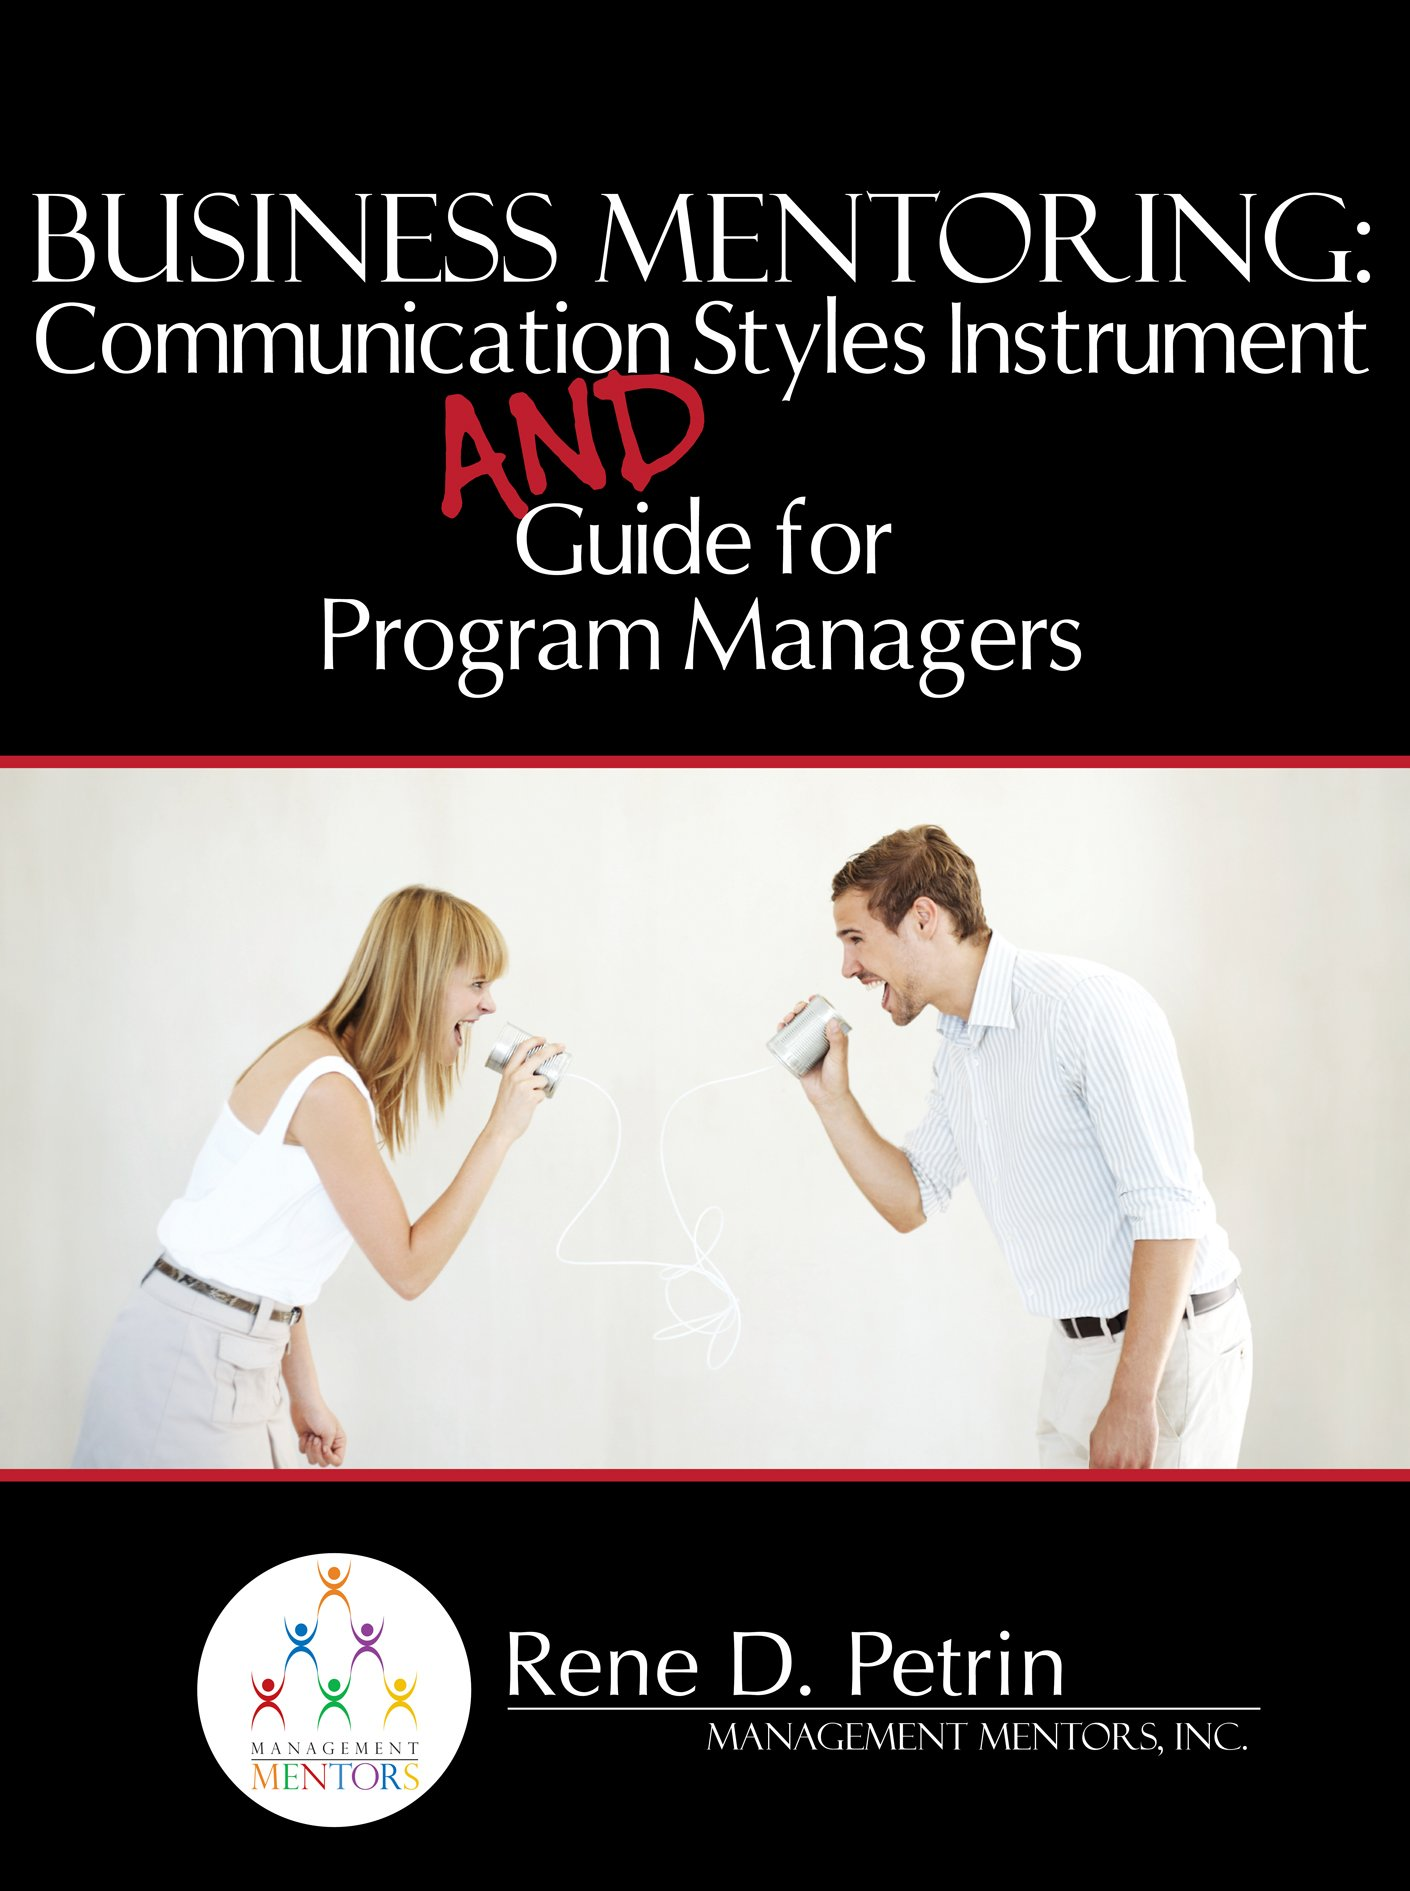 Mentoring Communication Styles Instrument and Guide